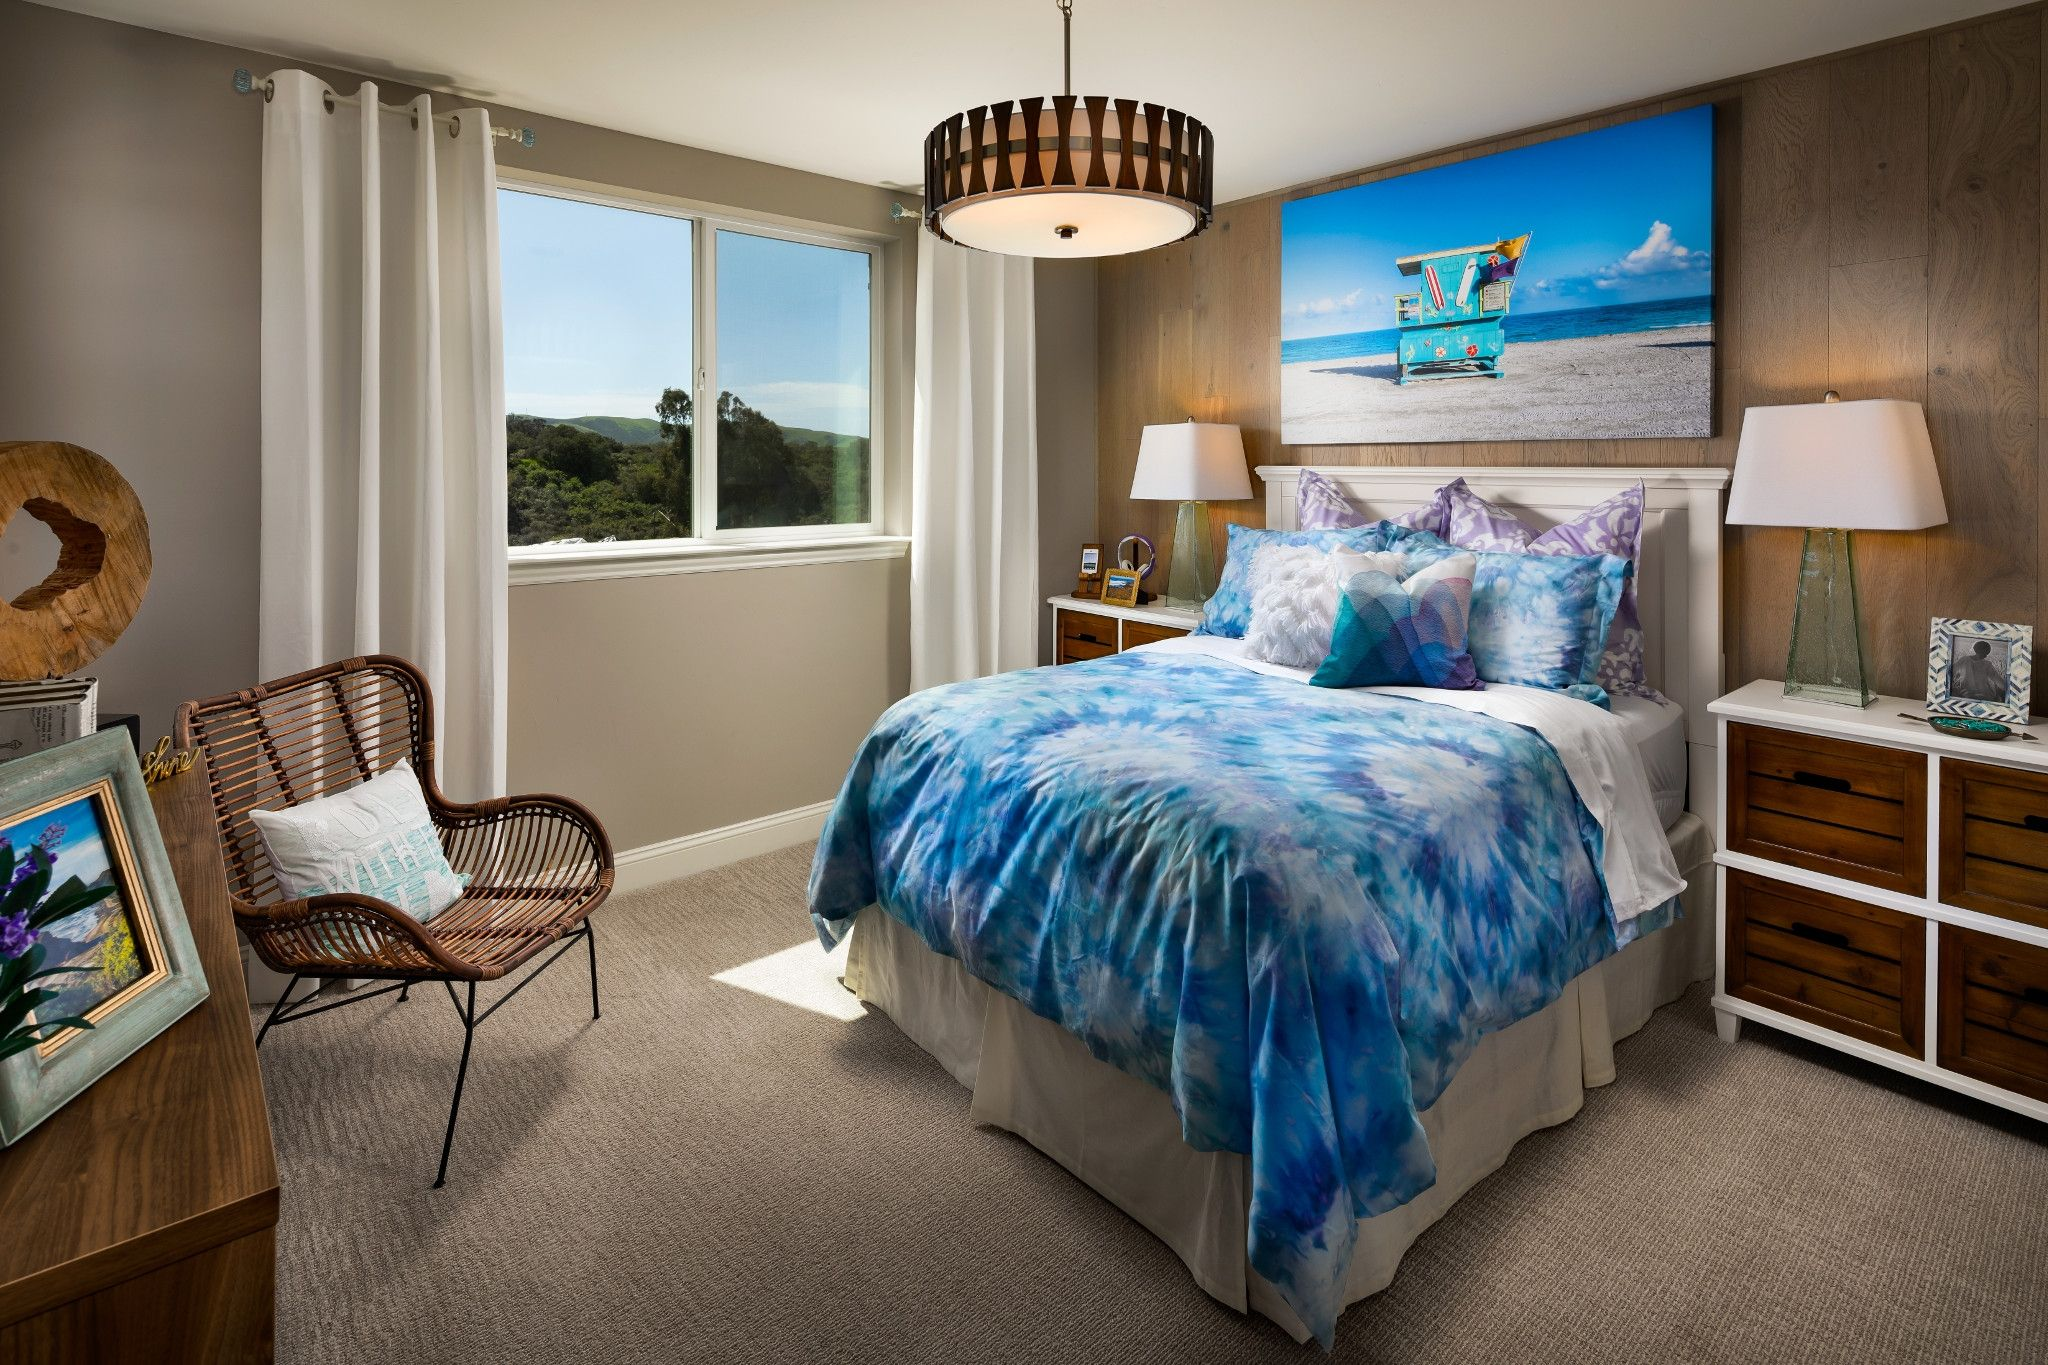 Bedroom featured in the Acacia By Shea Homes - Trilogy in Santa Barbara, CA